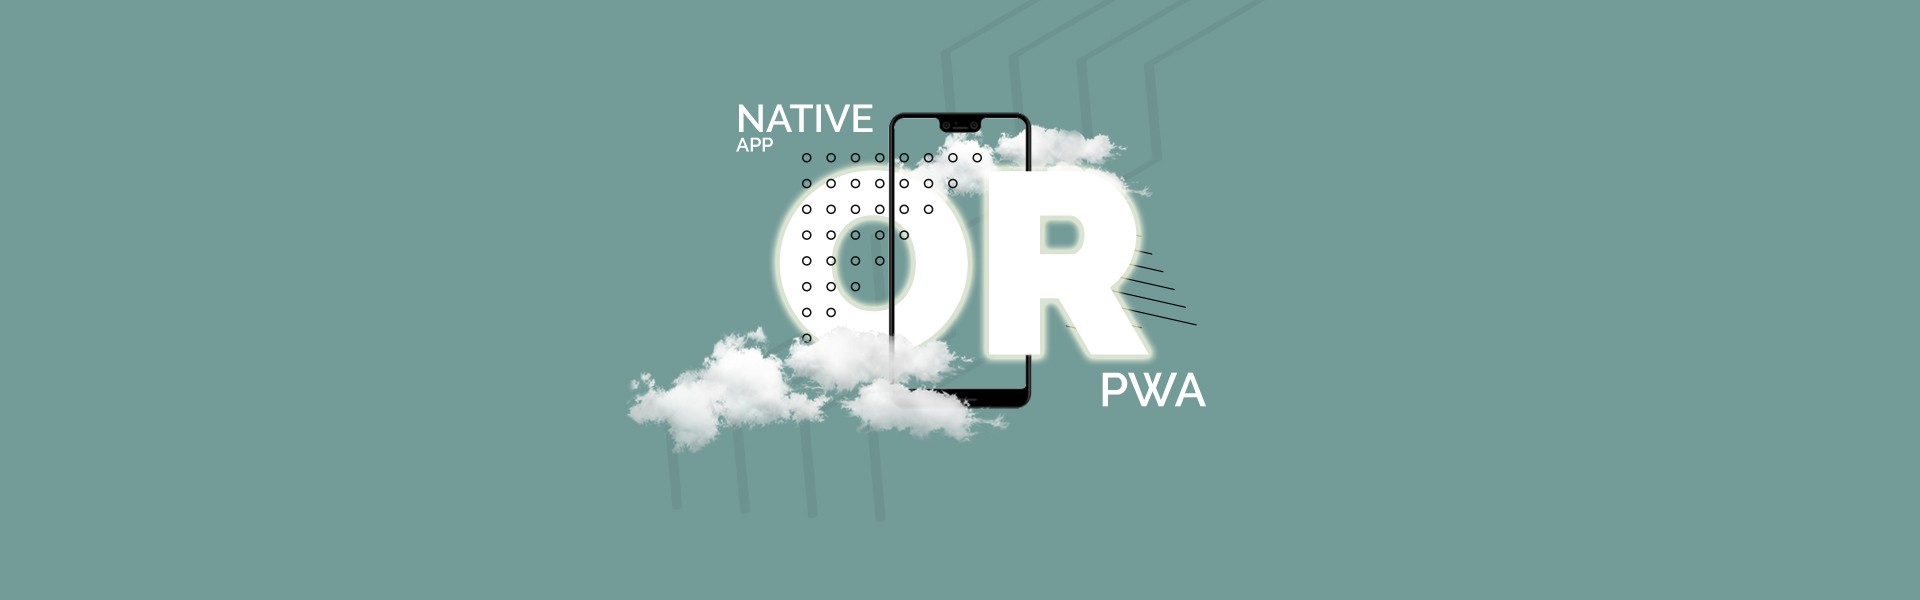 Native-app-or-PWA-Which-is-the-better-choice_banner